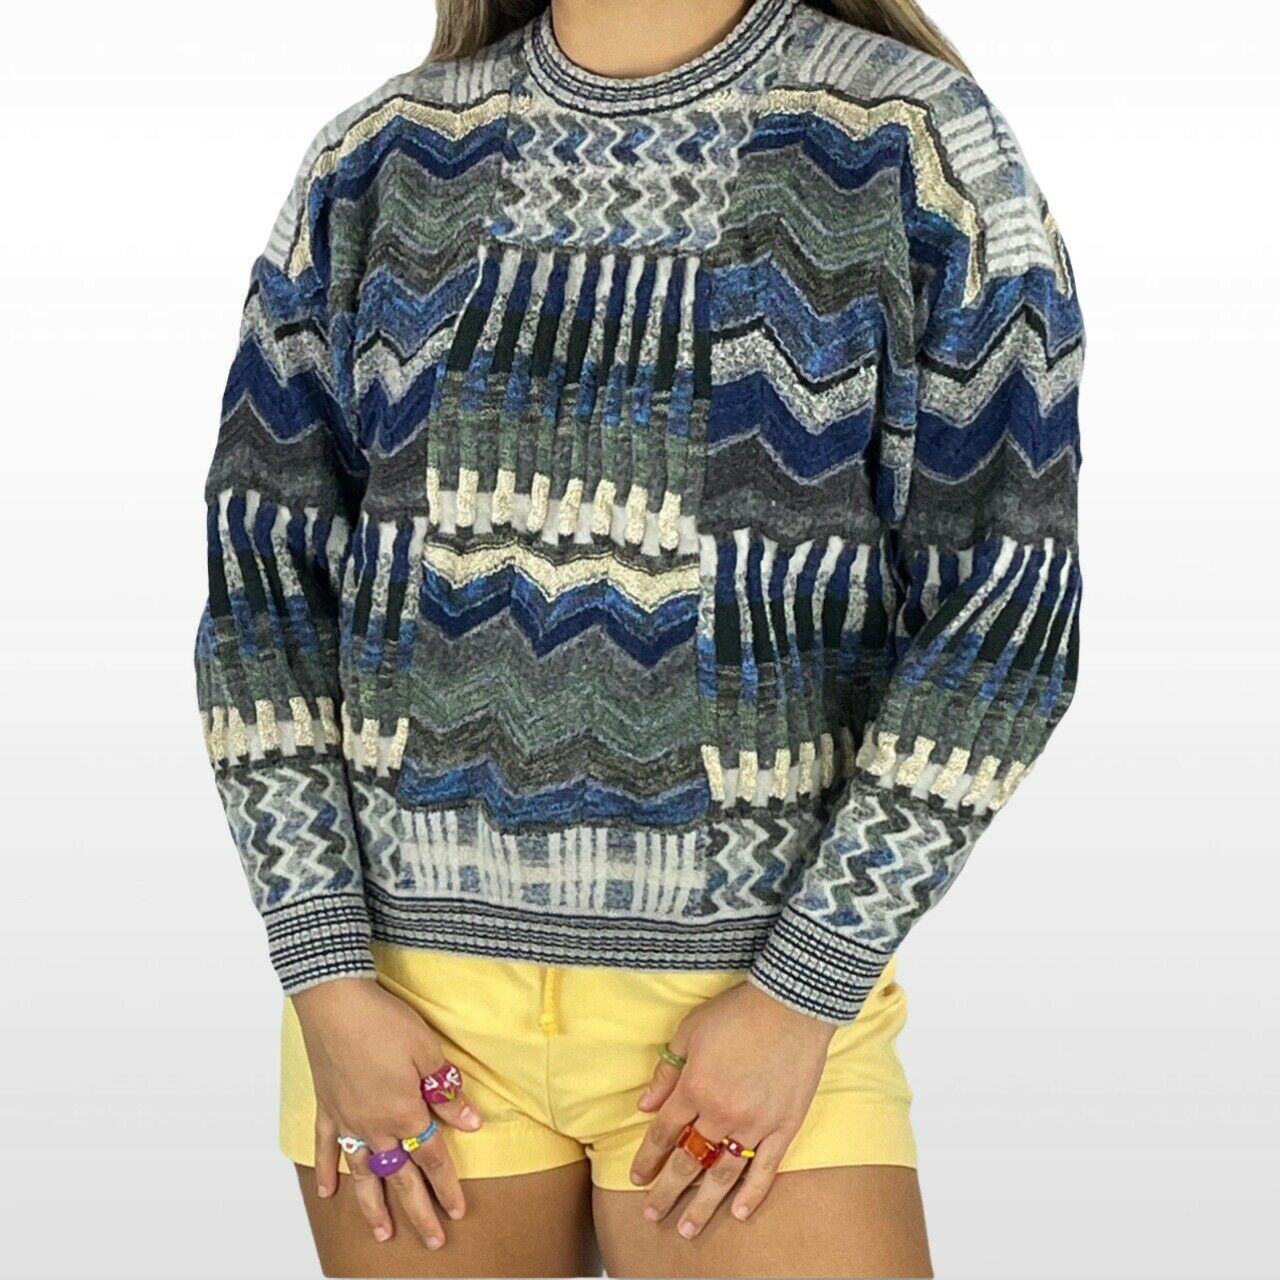 Abstract textured knit sweater - image 2